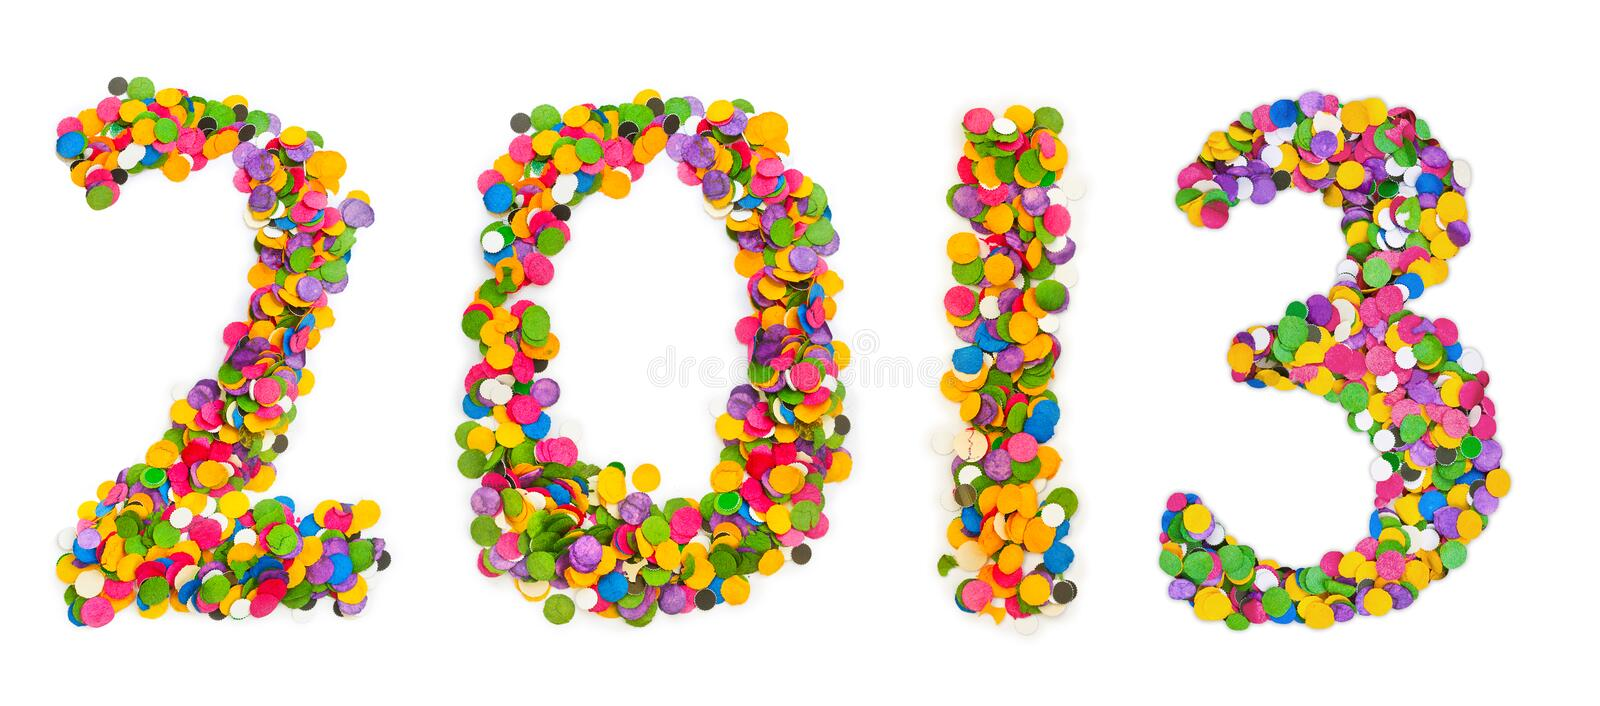 Download 2013 made of confetti stock photo. Image of 2013, isolated - 27397940